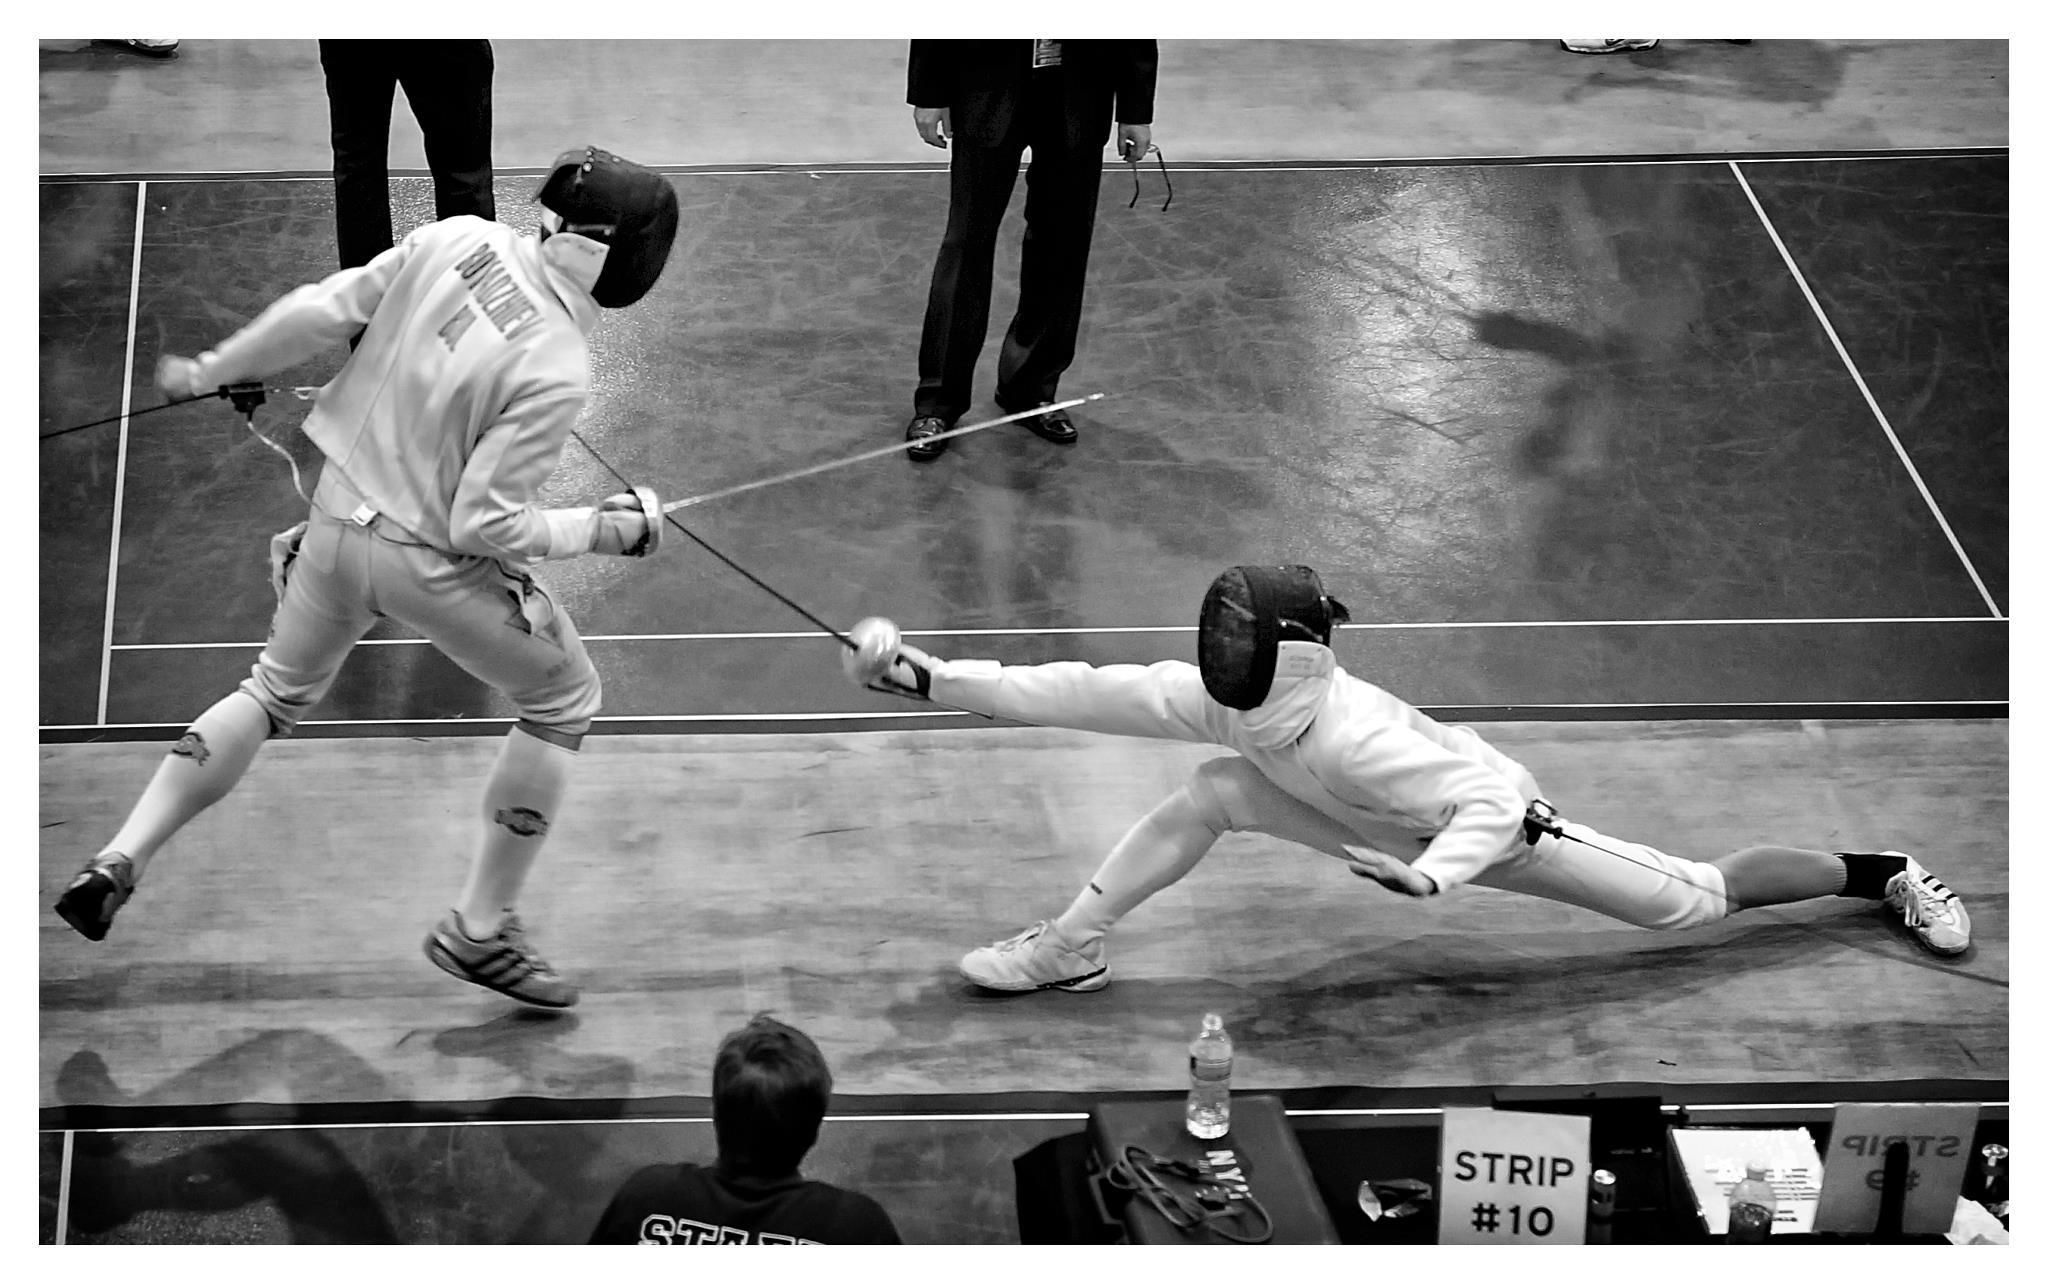 Fencing Incredible Lunge Photo By Admir Hadzic Chess